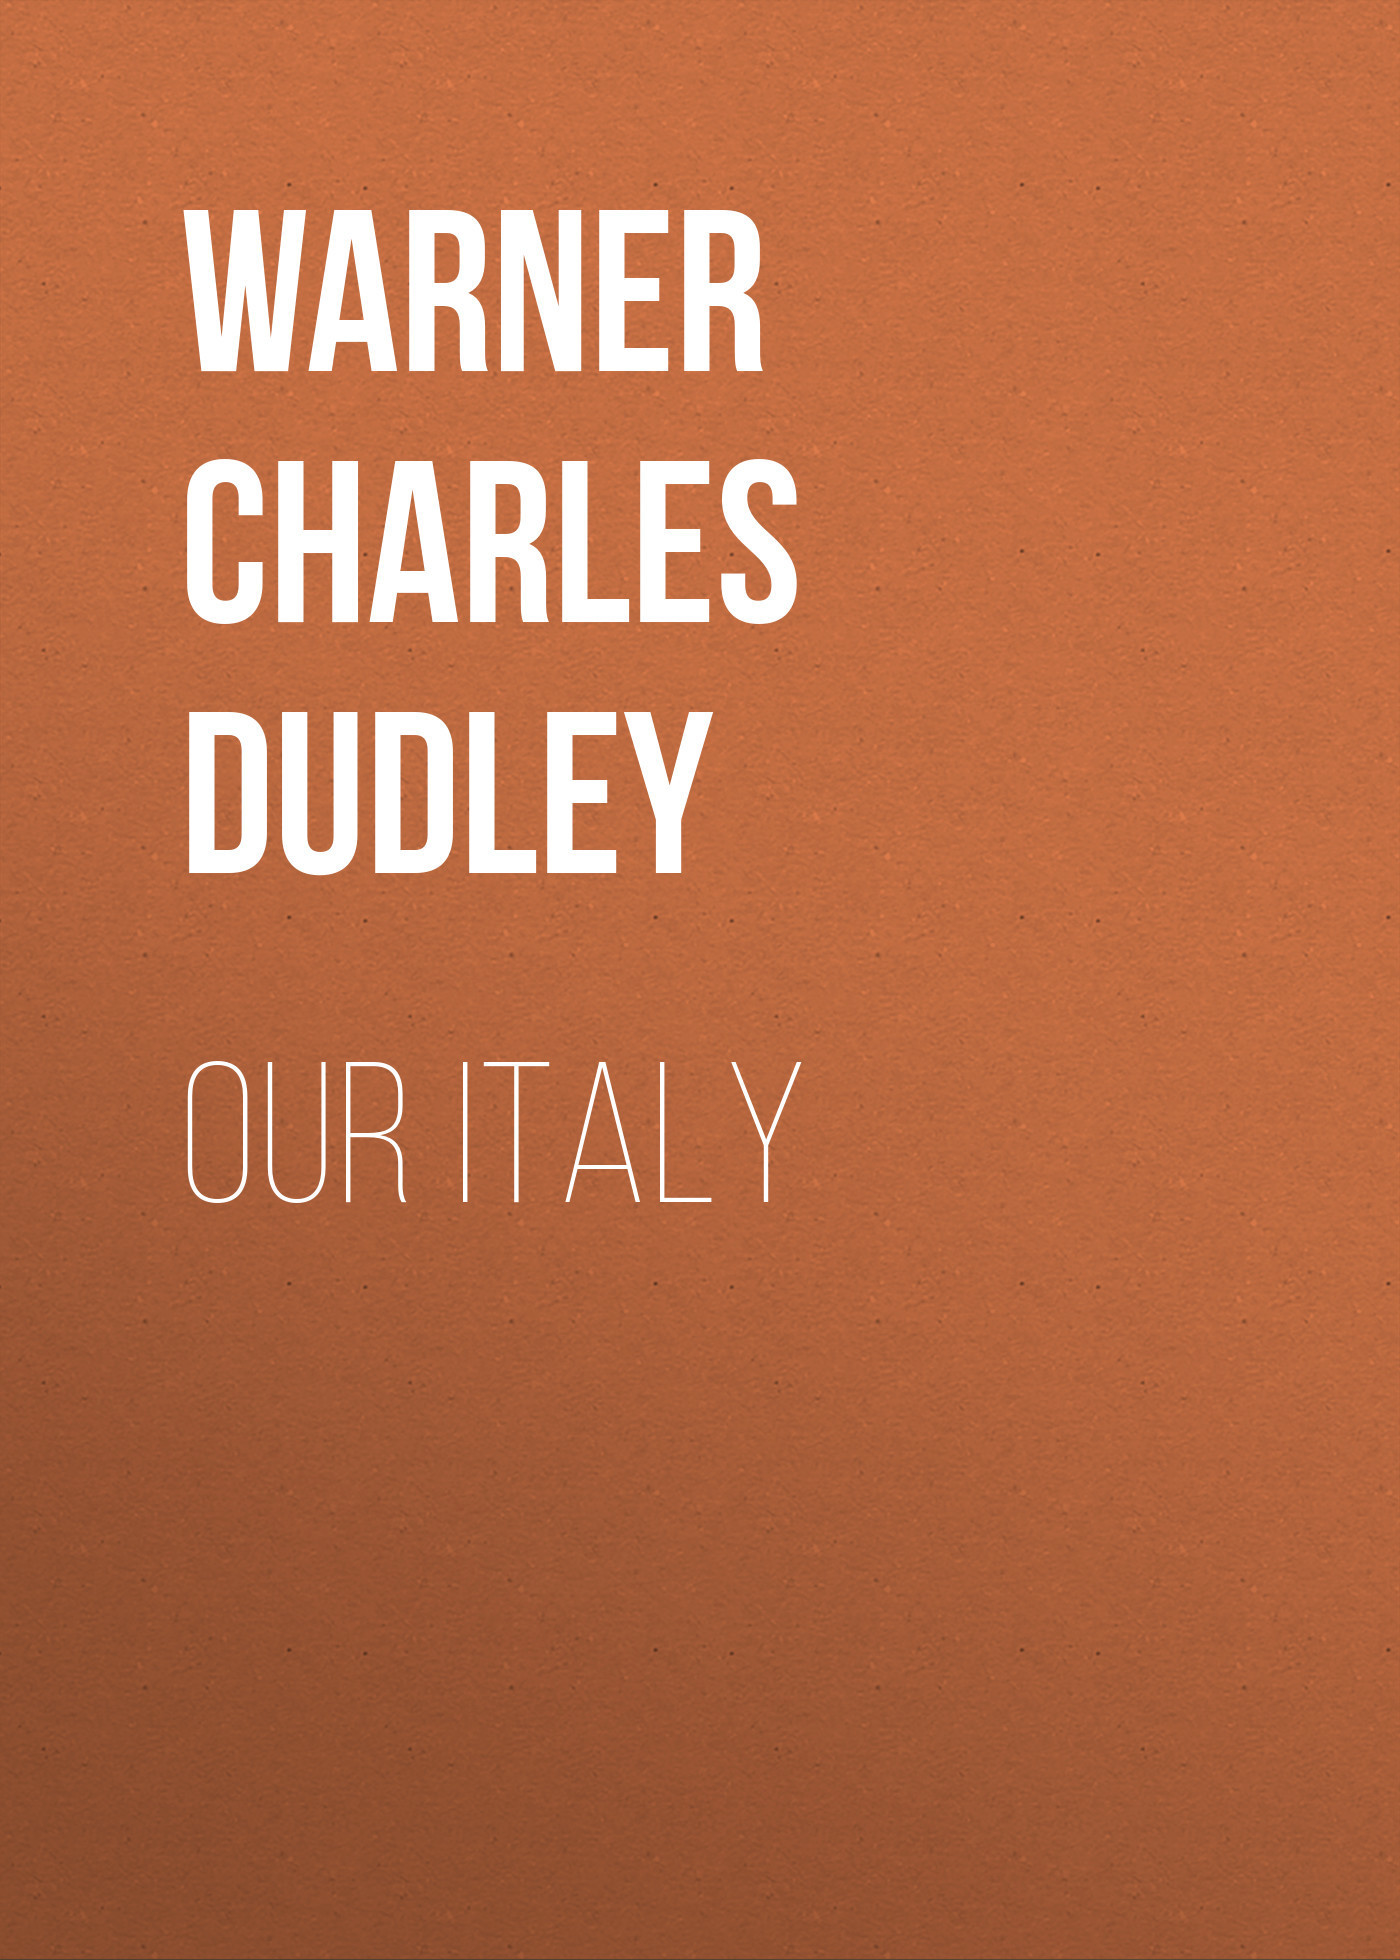 Warner Charles Dudley Our Italy warner charles dudley in the levant